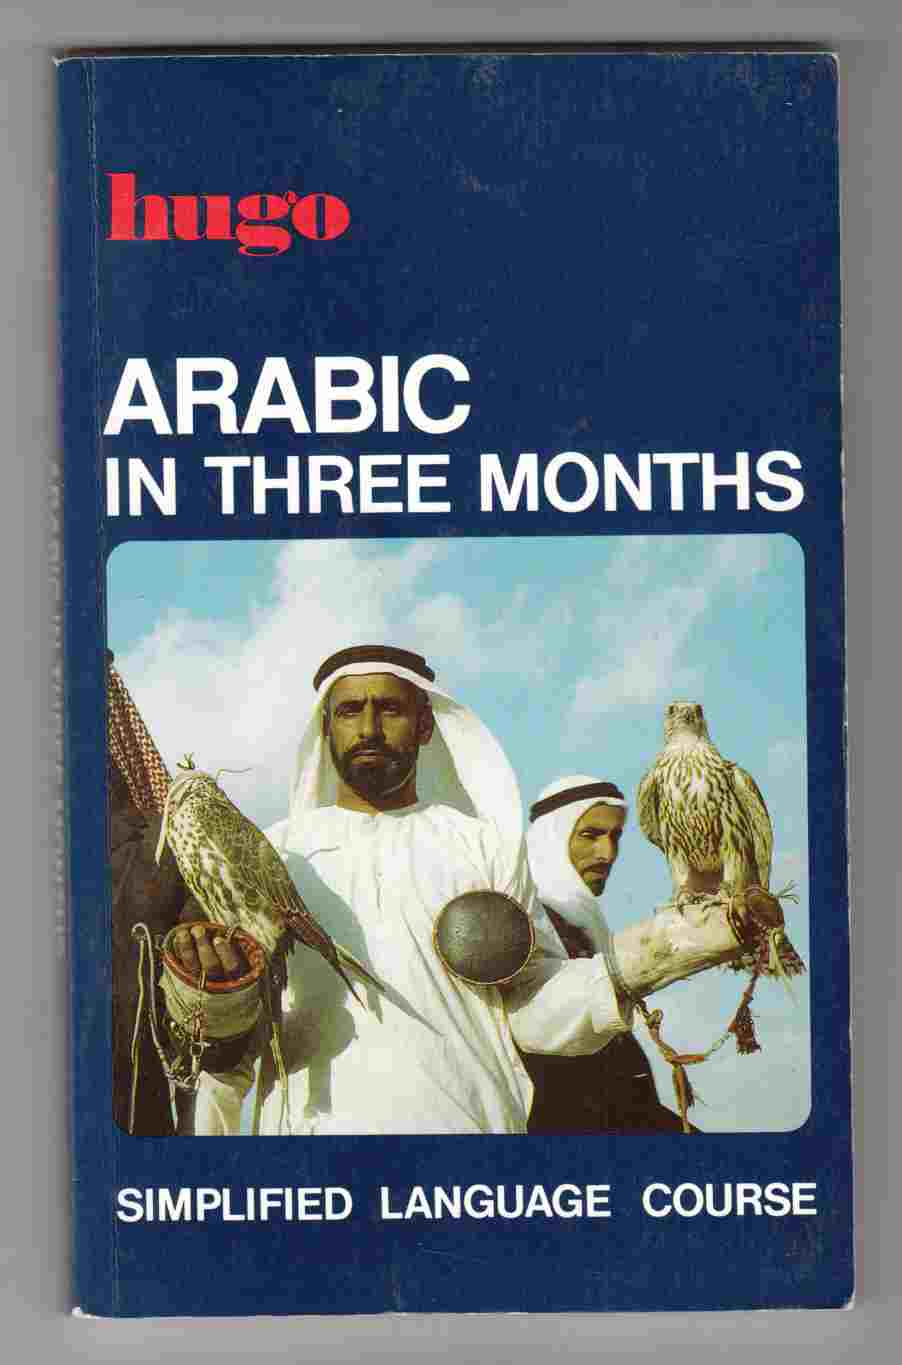 Image for Hugo's Simplified System: Arabic in Three Months